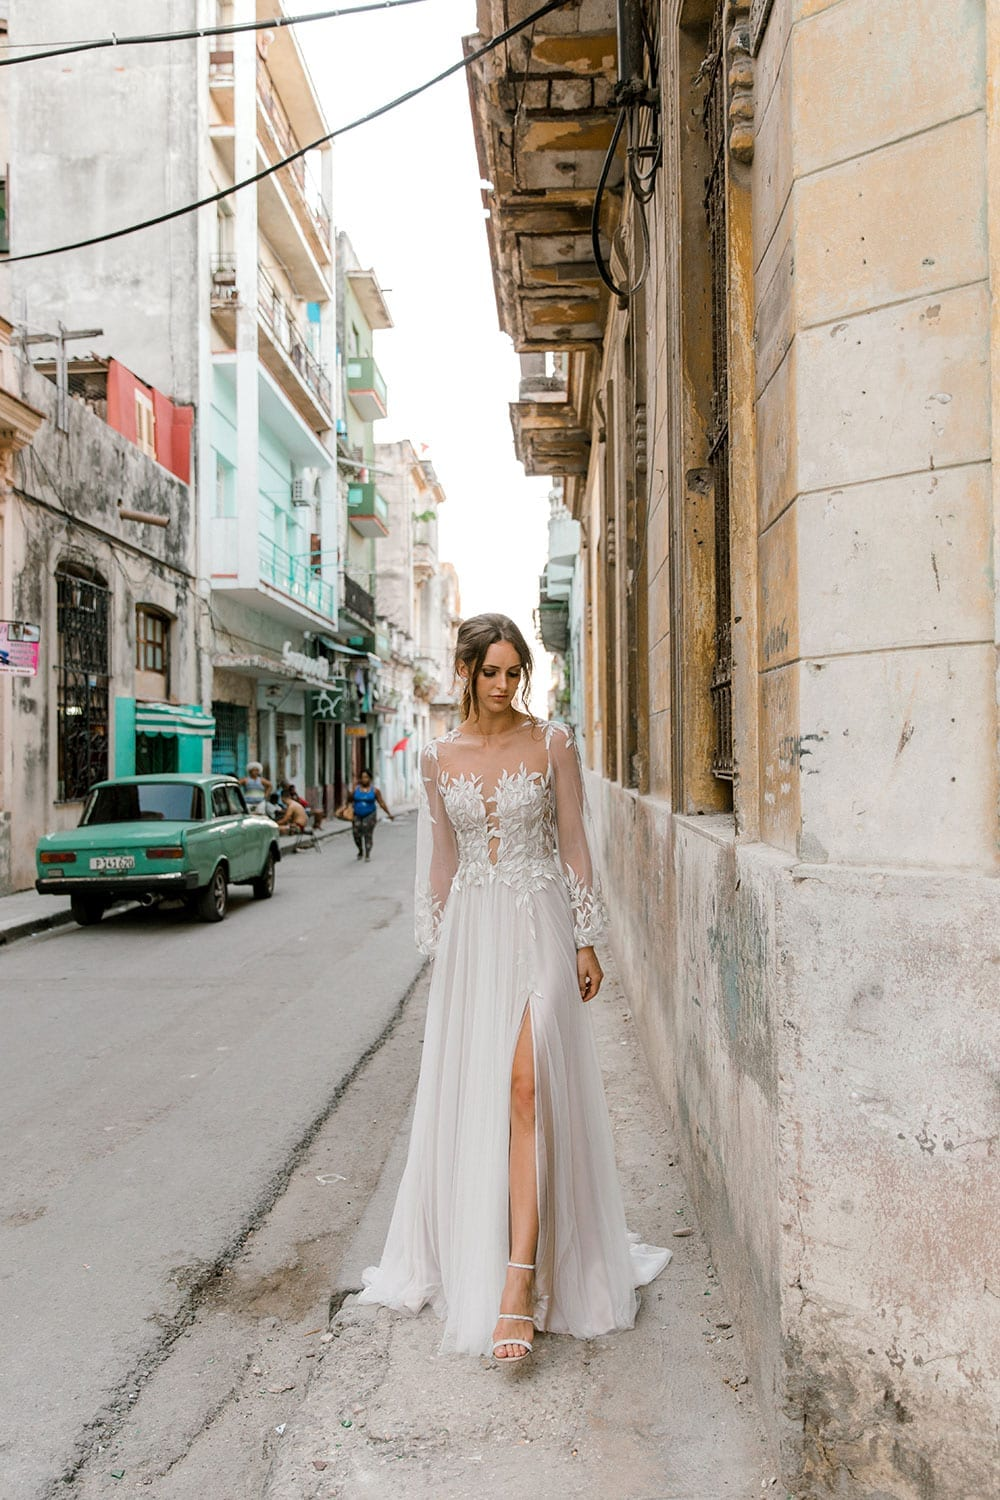 Model wearing Vinka Design Ivy Wedding Dress, a Silk and Tulle Wedding Gown with lace and Swarovski crystals walking through the streets of Havana